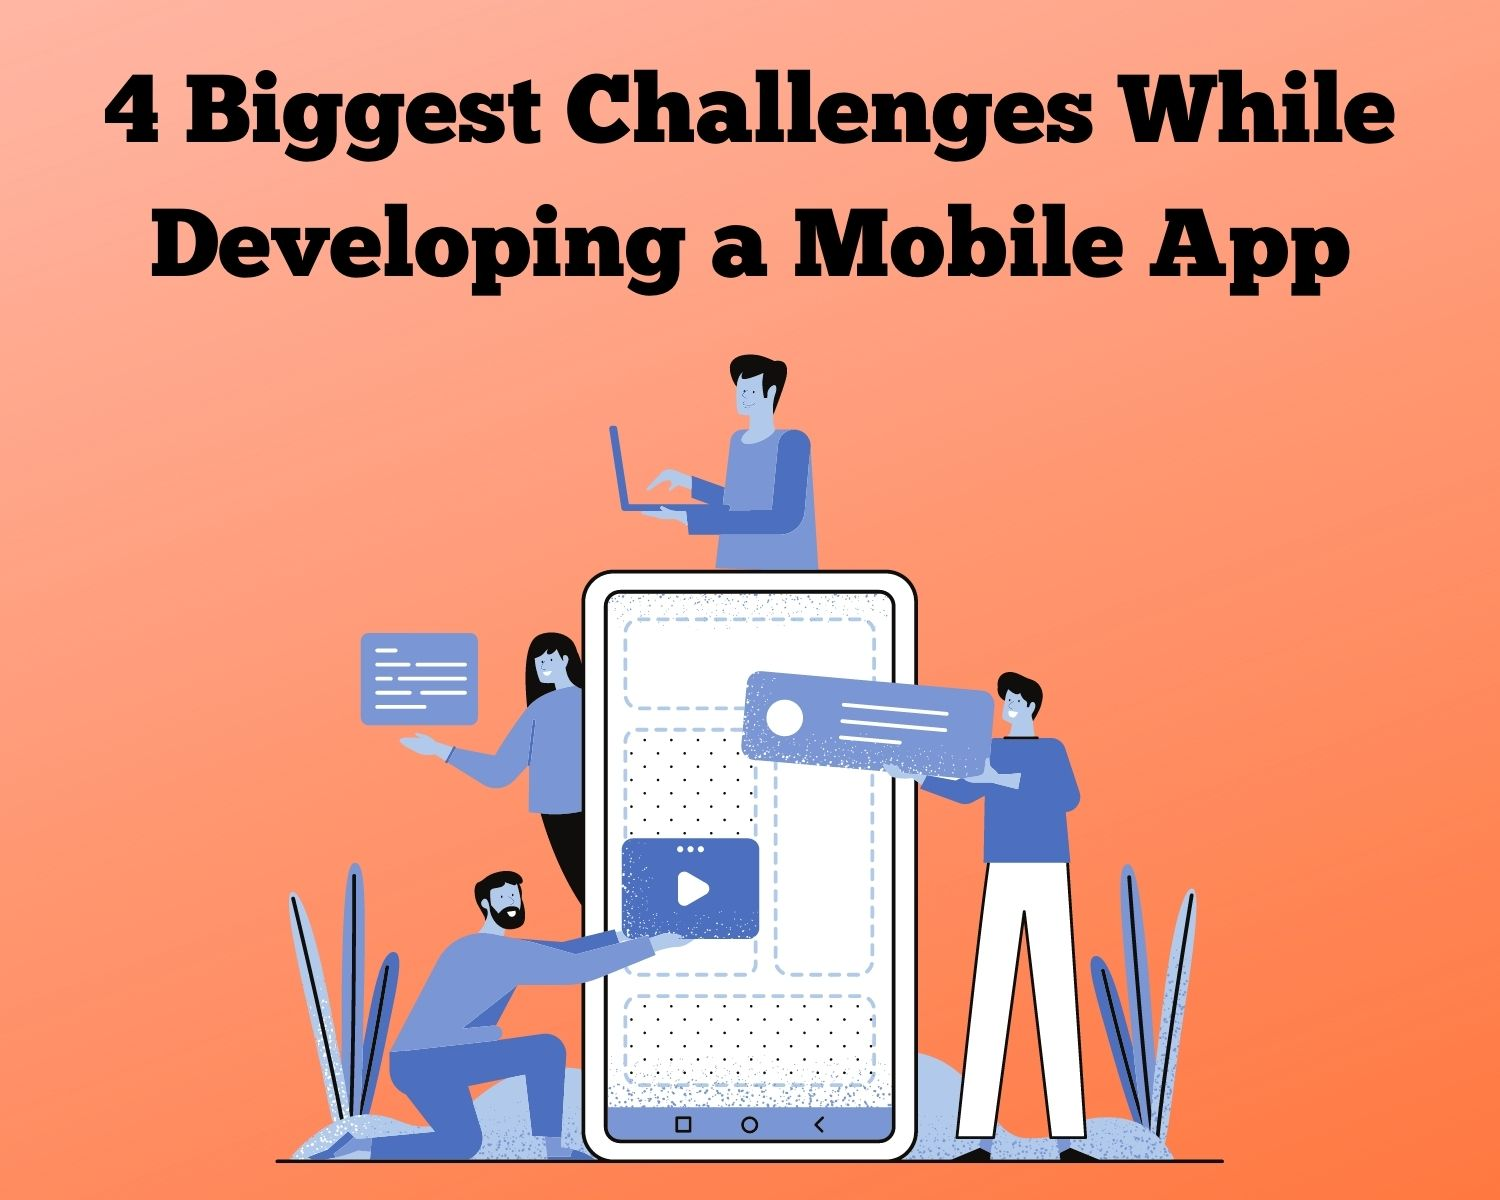 4 Biggest Challenges While Developing a Mobile App